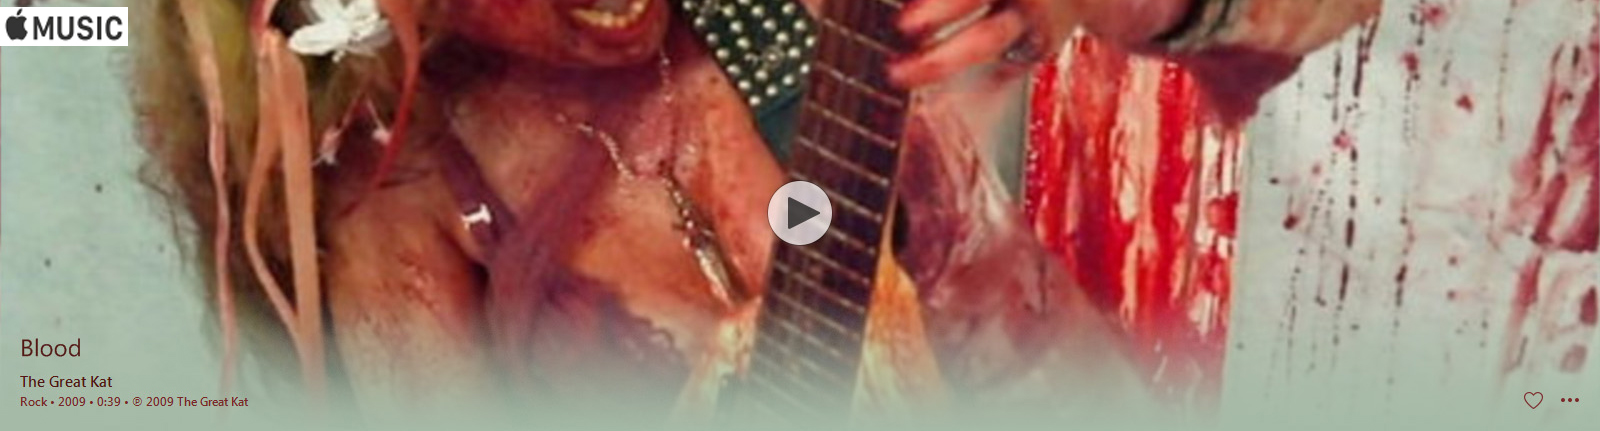 "APPLE MUSIC is NOW STREAMING The Great Kat's ""BLOOD"" MUSIC VIDEO!"